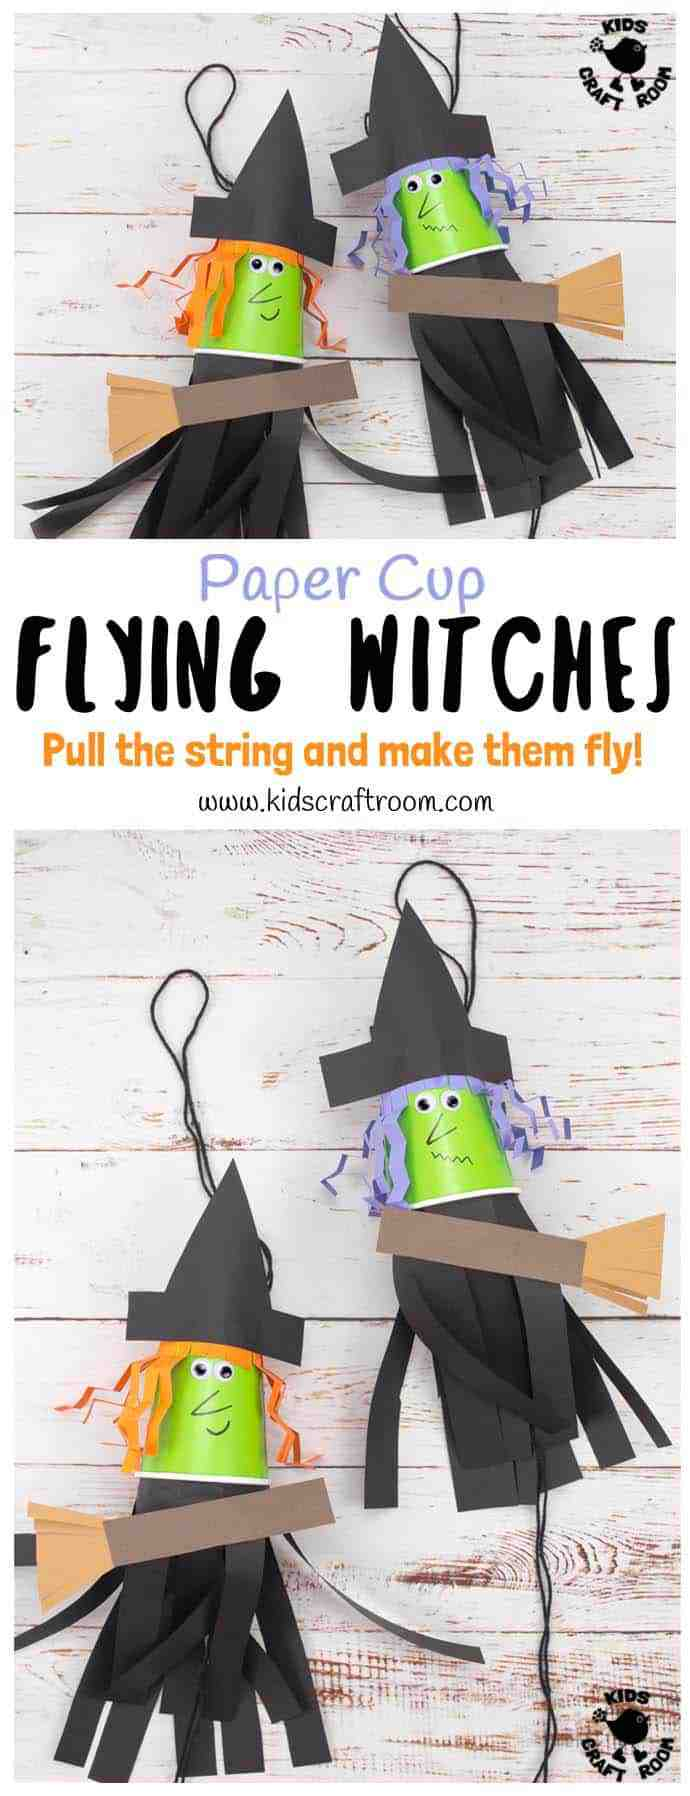 This Flying Paper Cup Witch Craft For Kids is so easy to make and loads of fun! Children will LOVE how interactive this paper cup craft is. Just pull the string and watch your witch fly up and down on her broomstick! Such a fun Halloween craft! #witch #halloween #witchcraft #witchcraftforkids #halloweencrafts #kidscrafts #kidscraft #papercupcrafts #papercups #witches #halloweencraft #halloweendecorations #kidscraftroom #preschool #kids